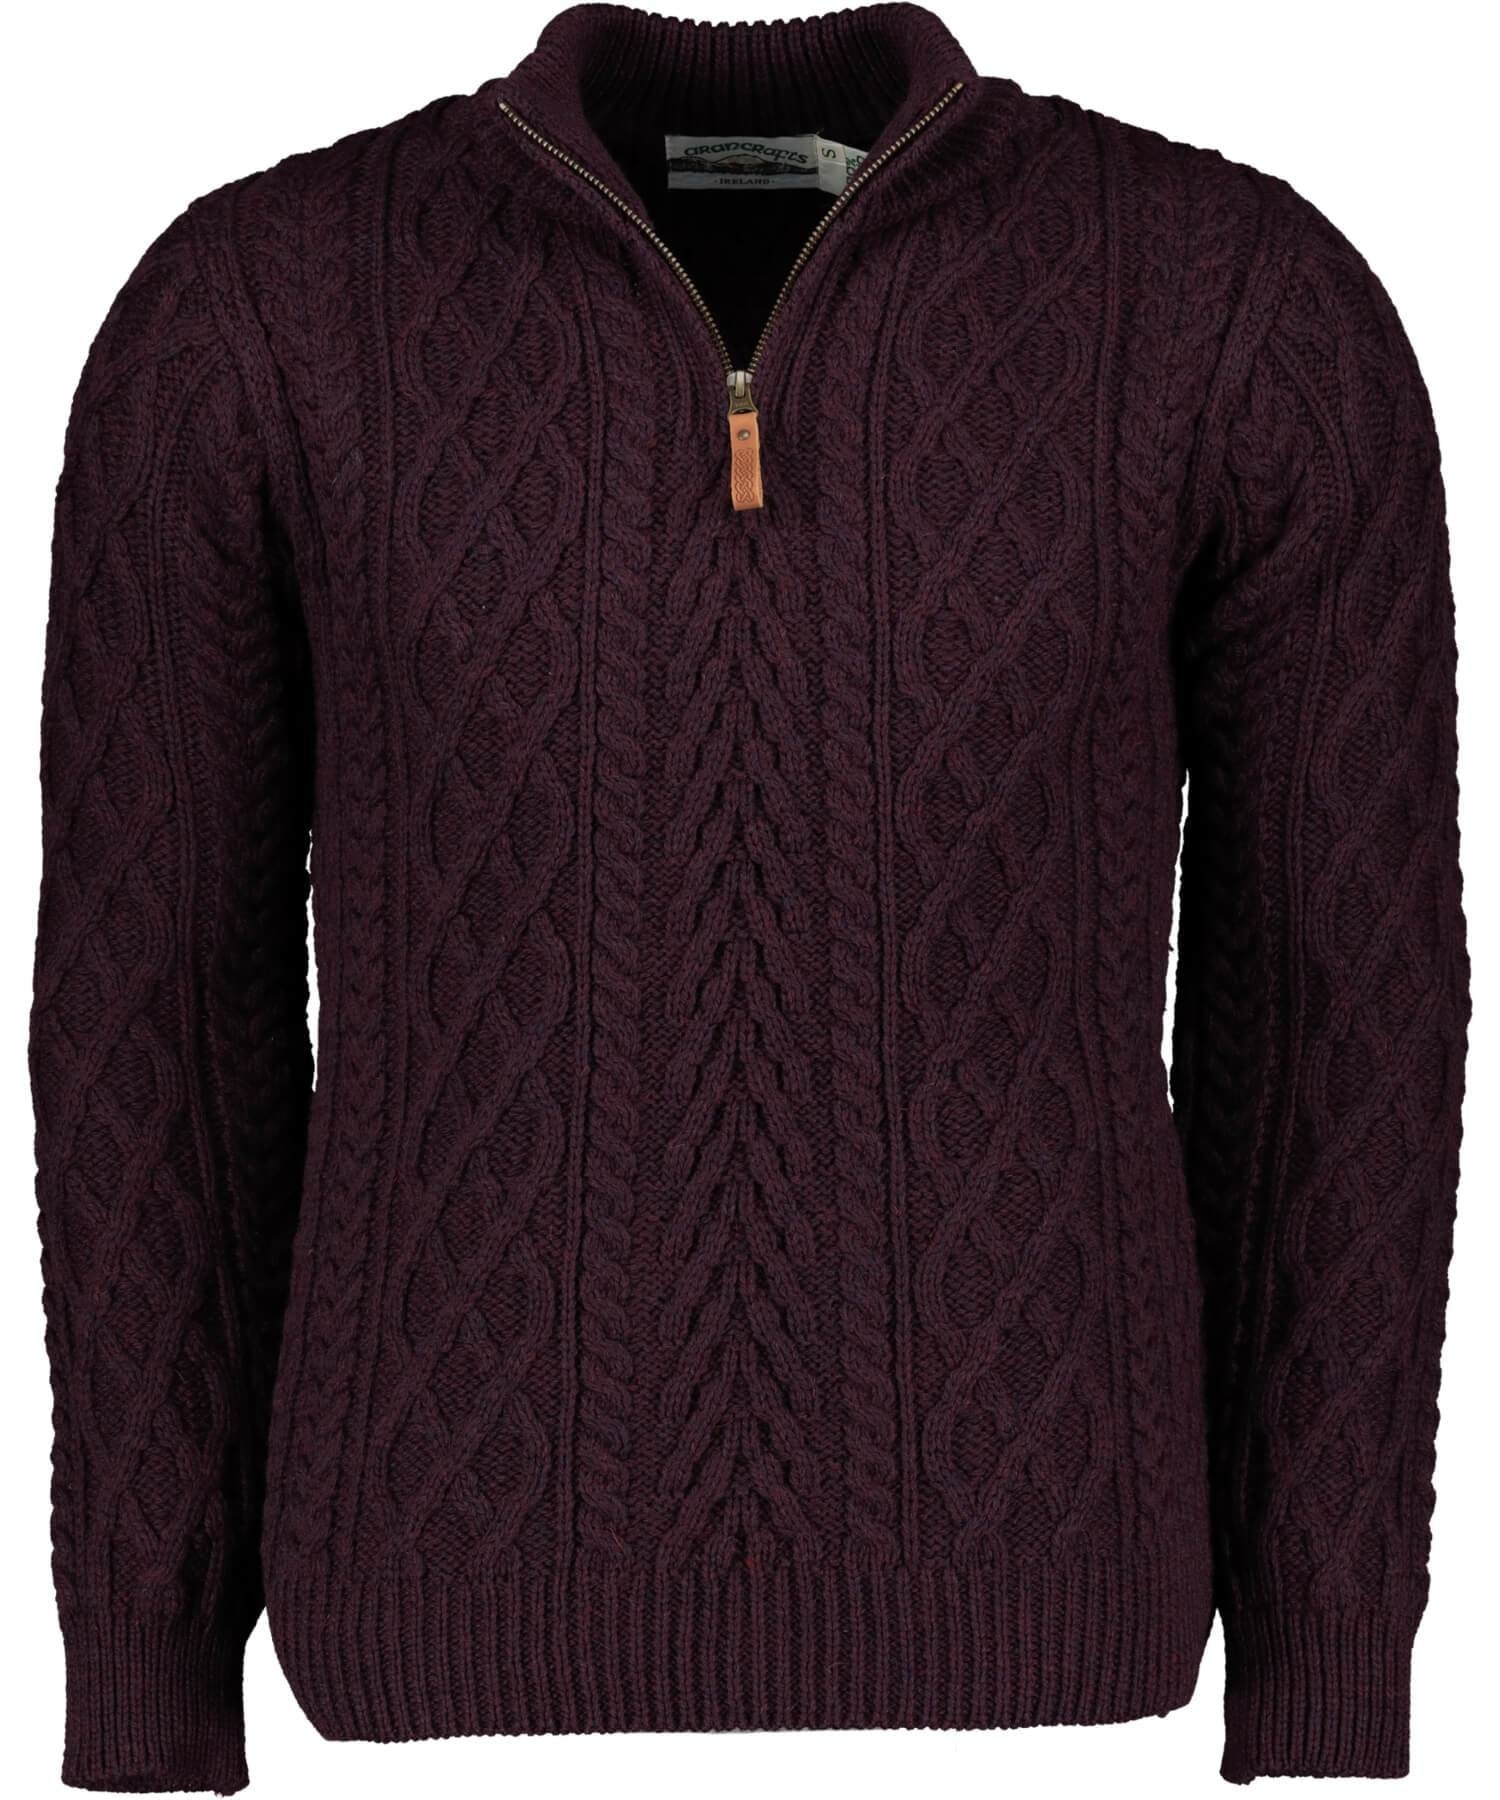 Donegal Half Zip Sweater Damson Irish Crafts